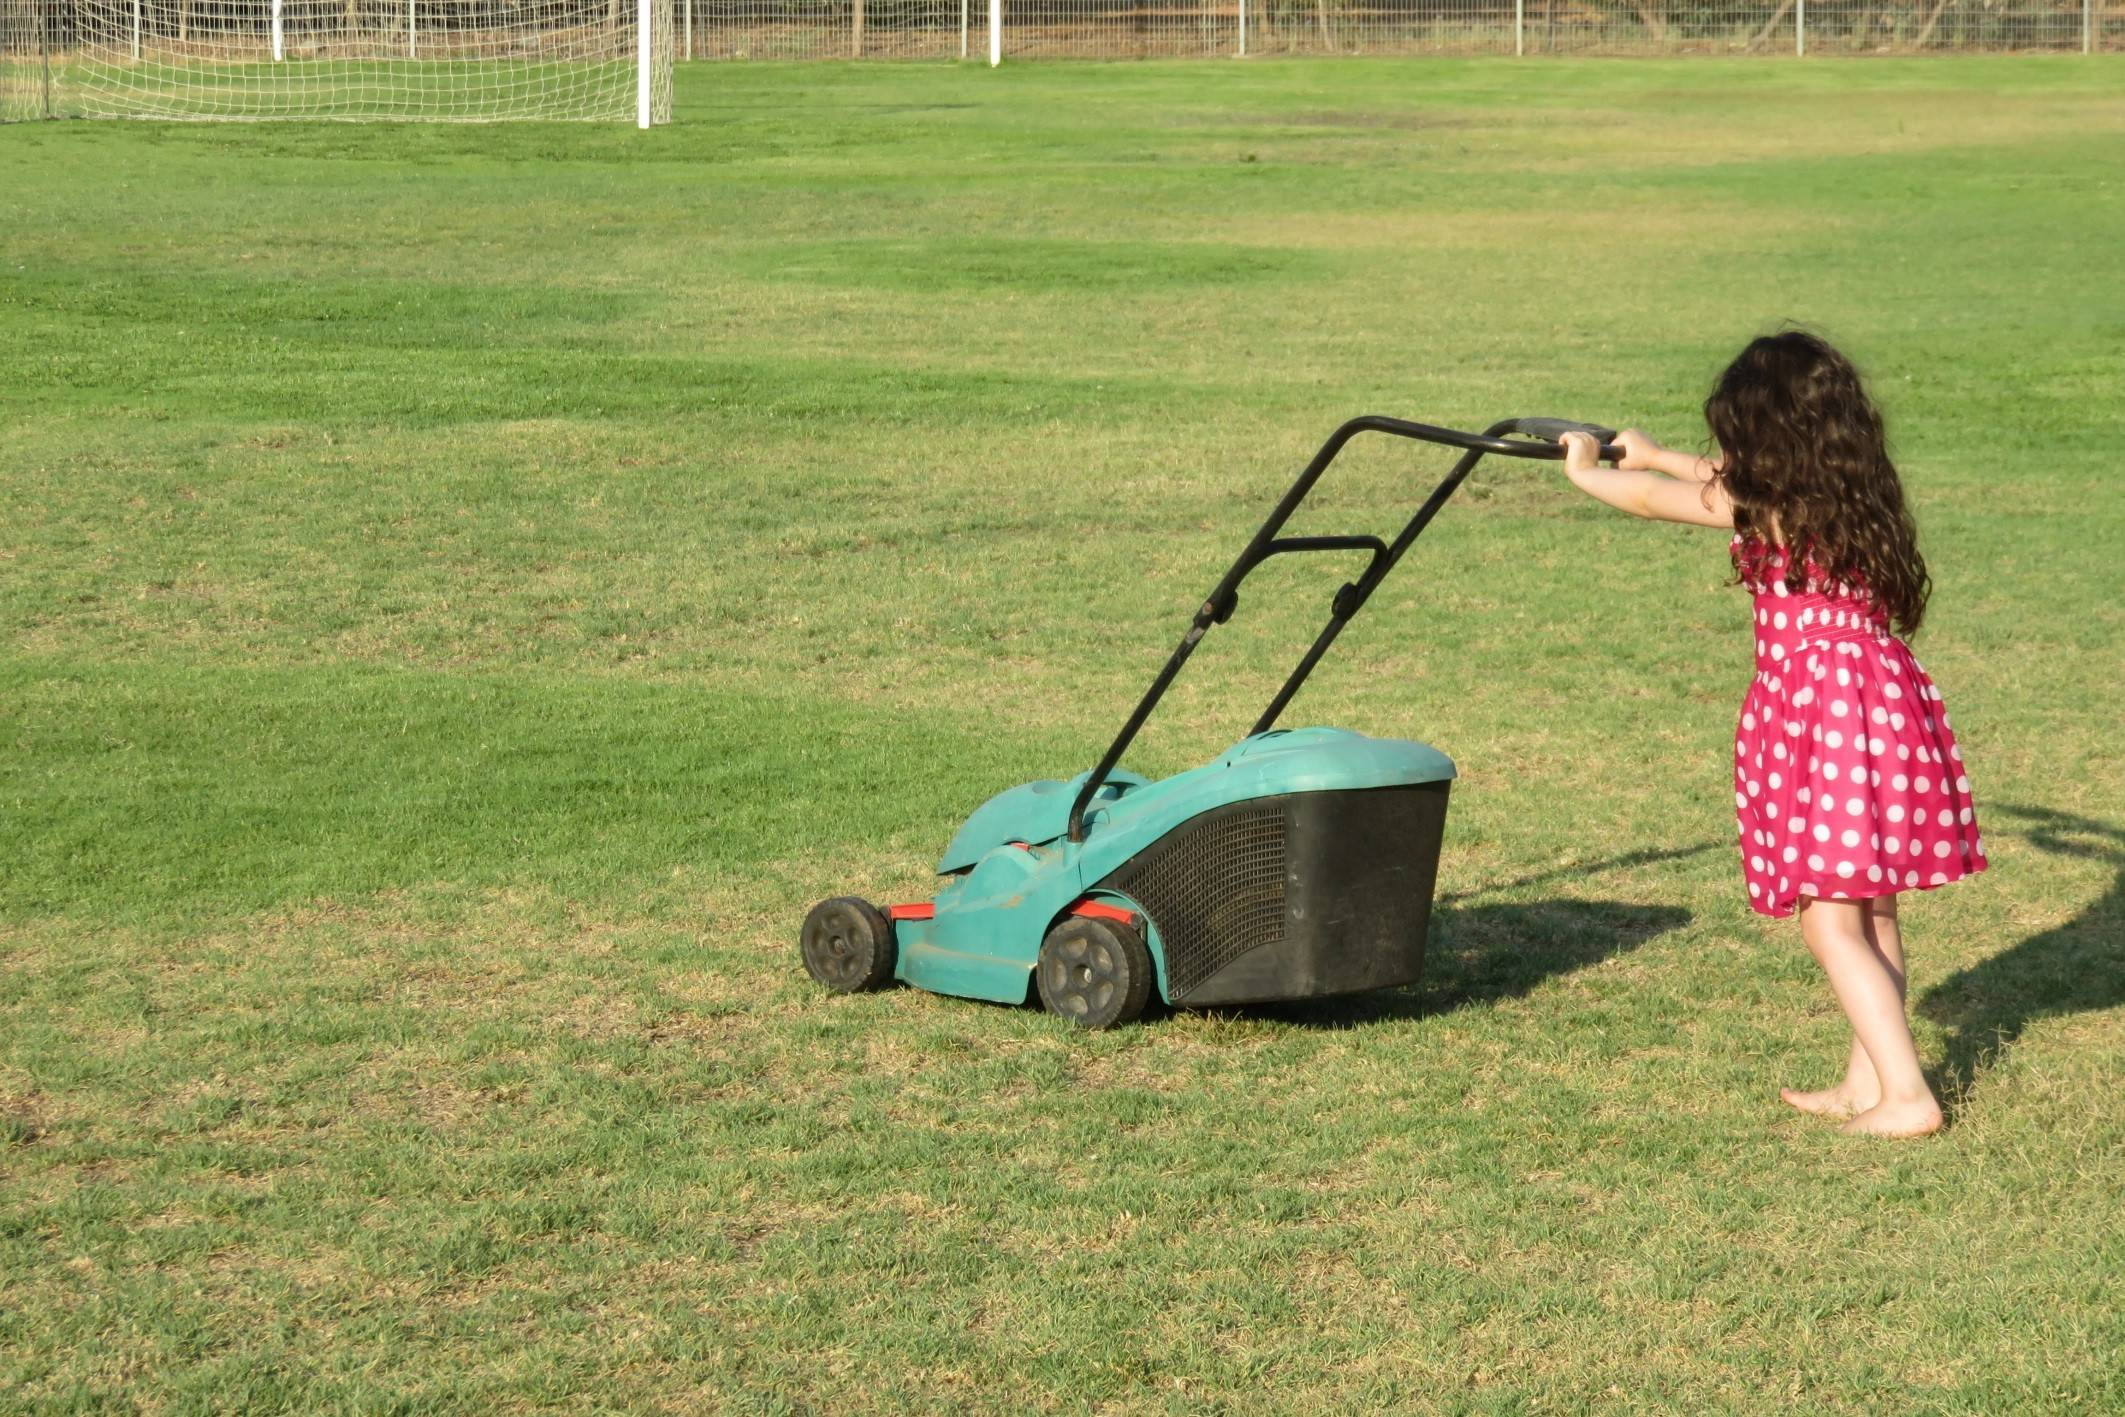 Every year, about 17,000 children in the United States are injured by lawn mowers.